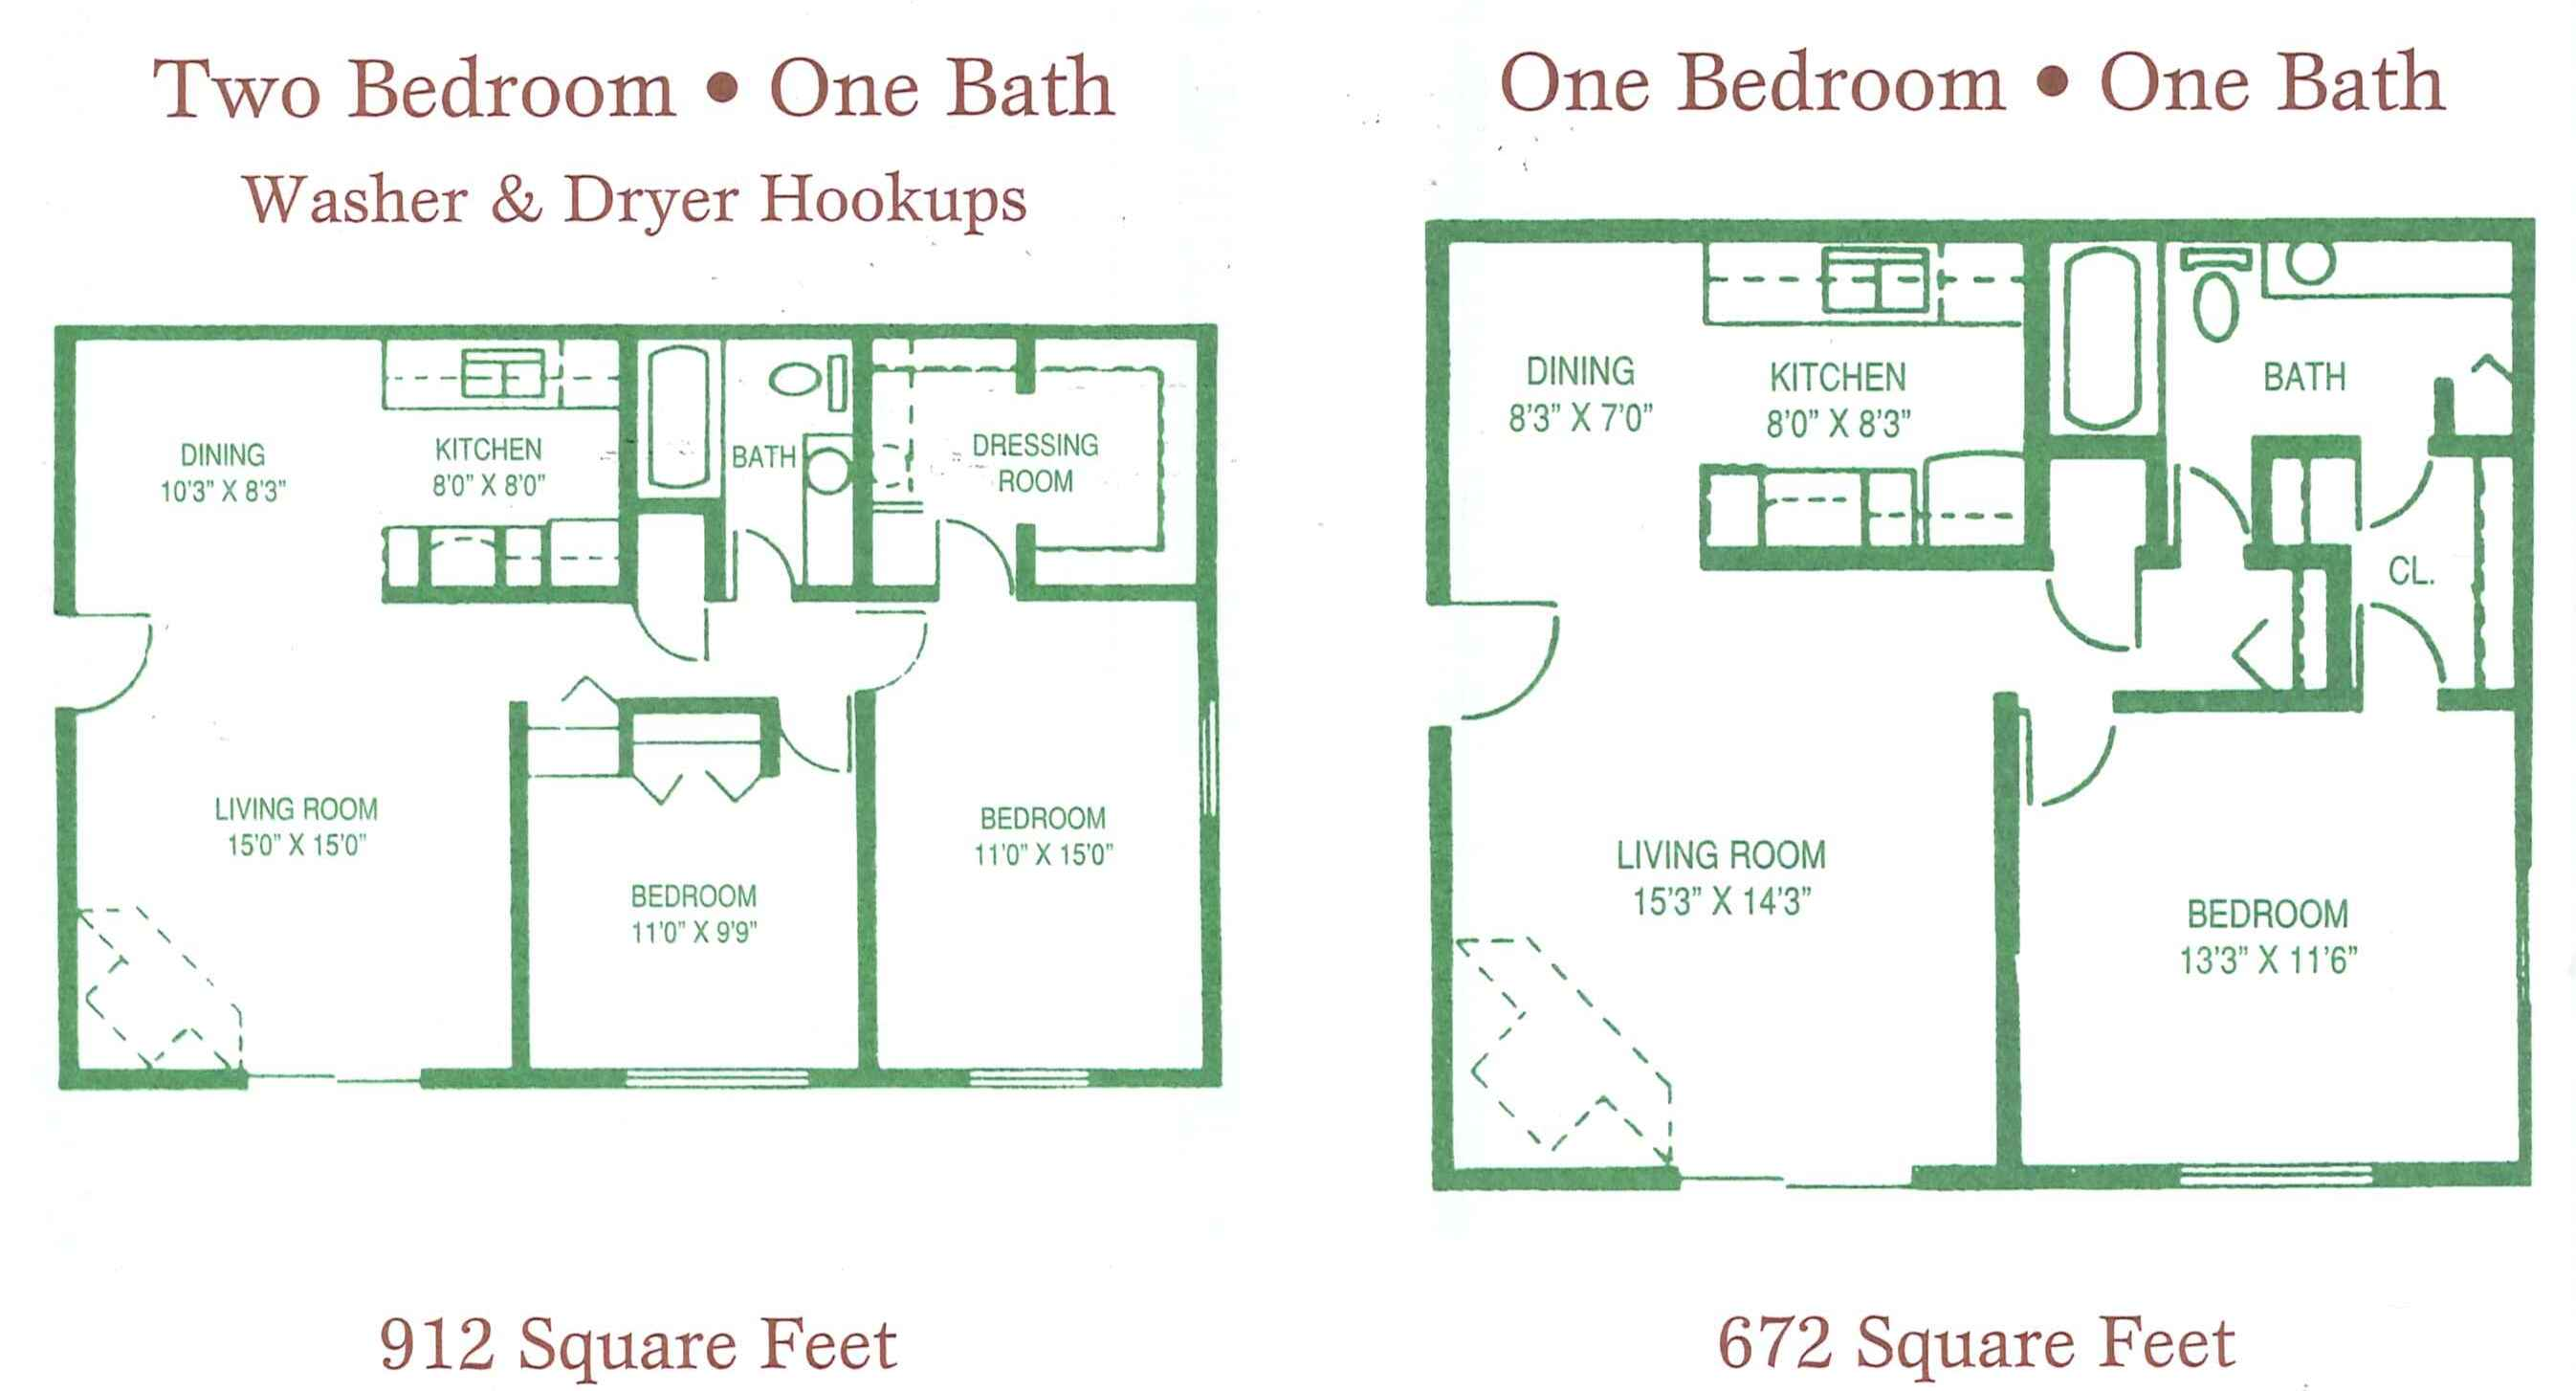 3 Bedroom Apartments In Colorado Springs 1 Bedroom Apartments In Wichita Ks Giveaway Party